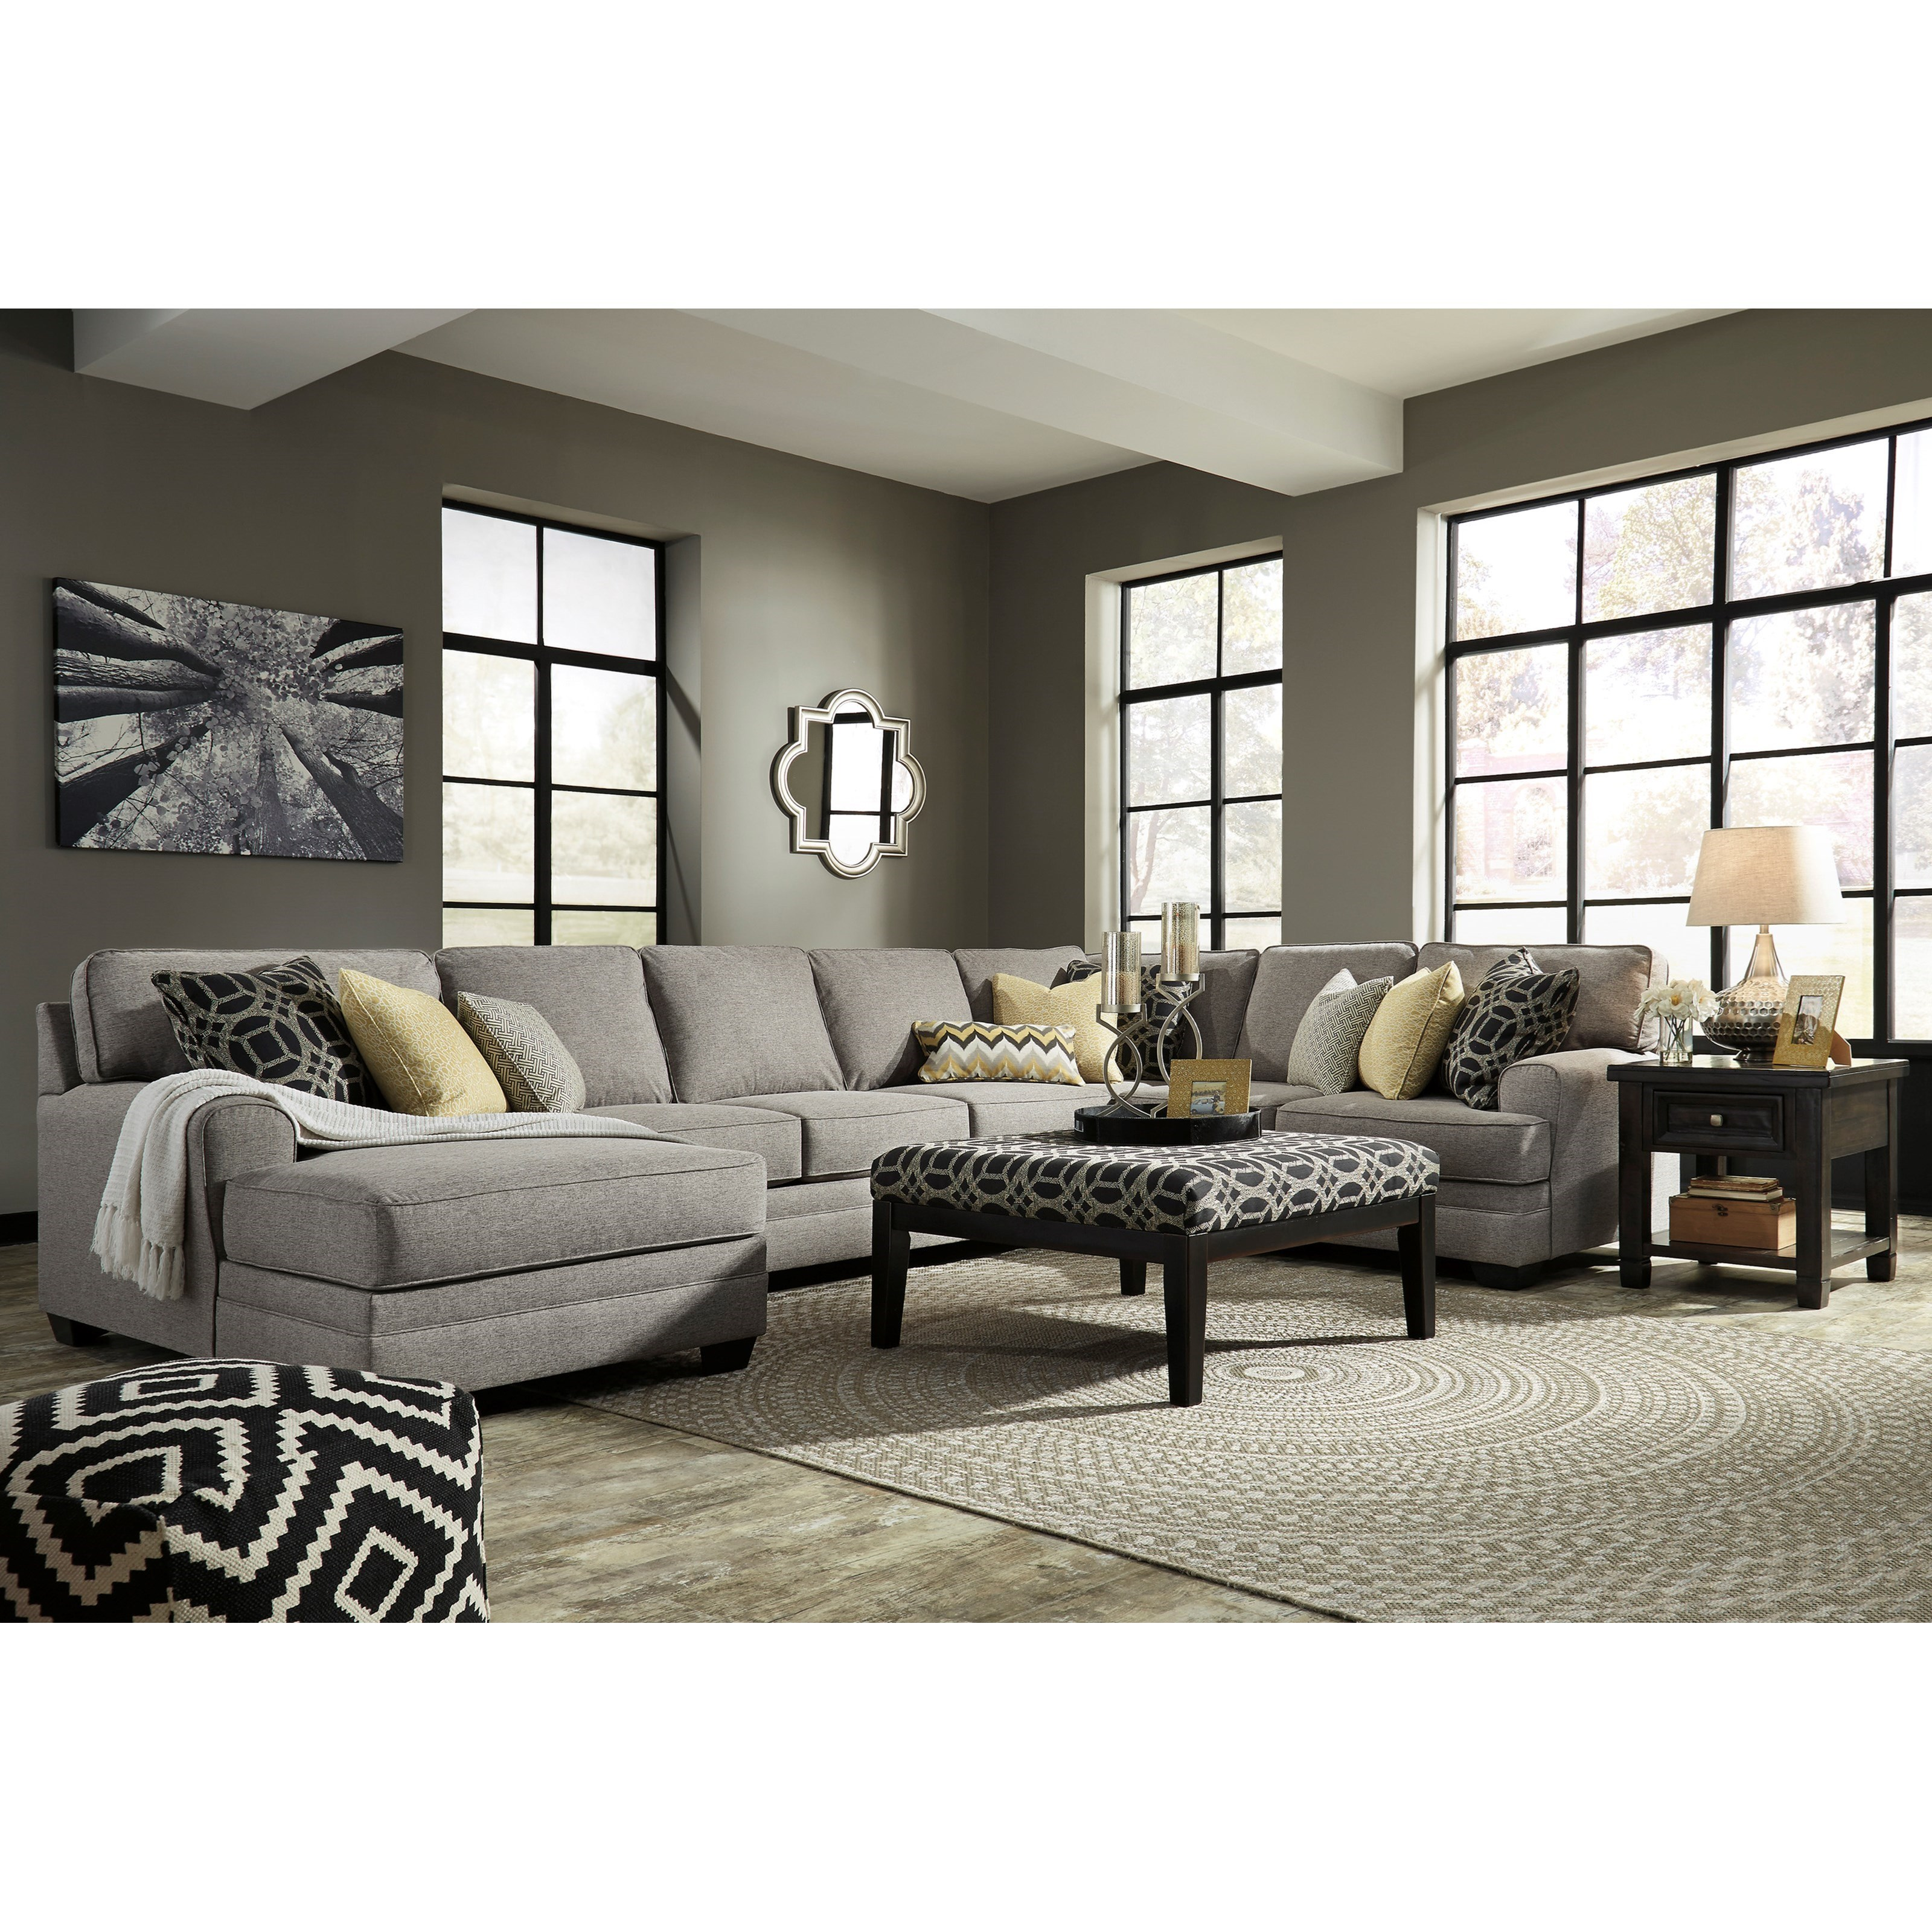 Benchcraft Cresson Stationary Living Room Group - Item Number: 54907 Living Room Group 9